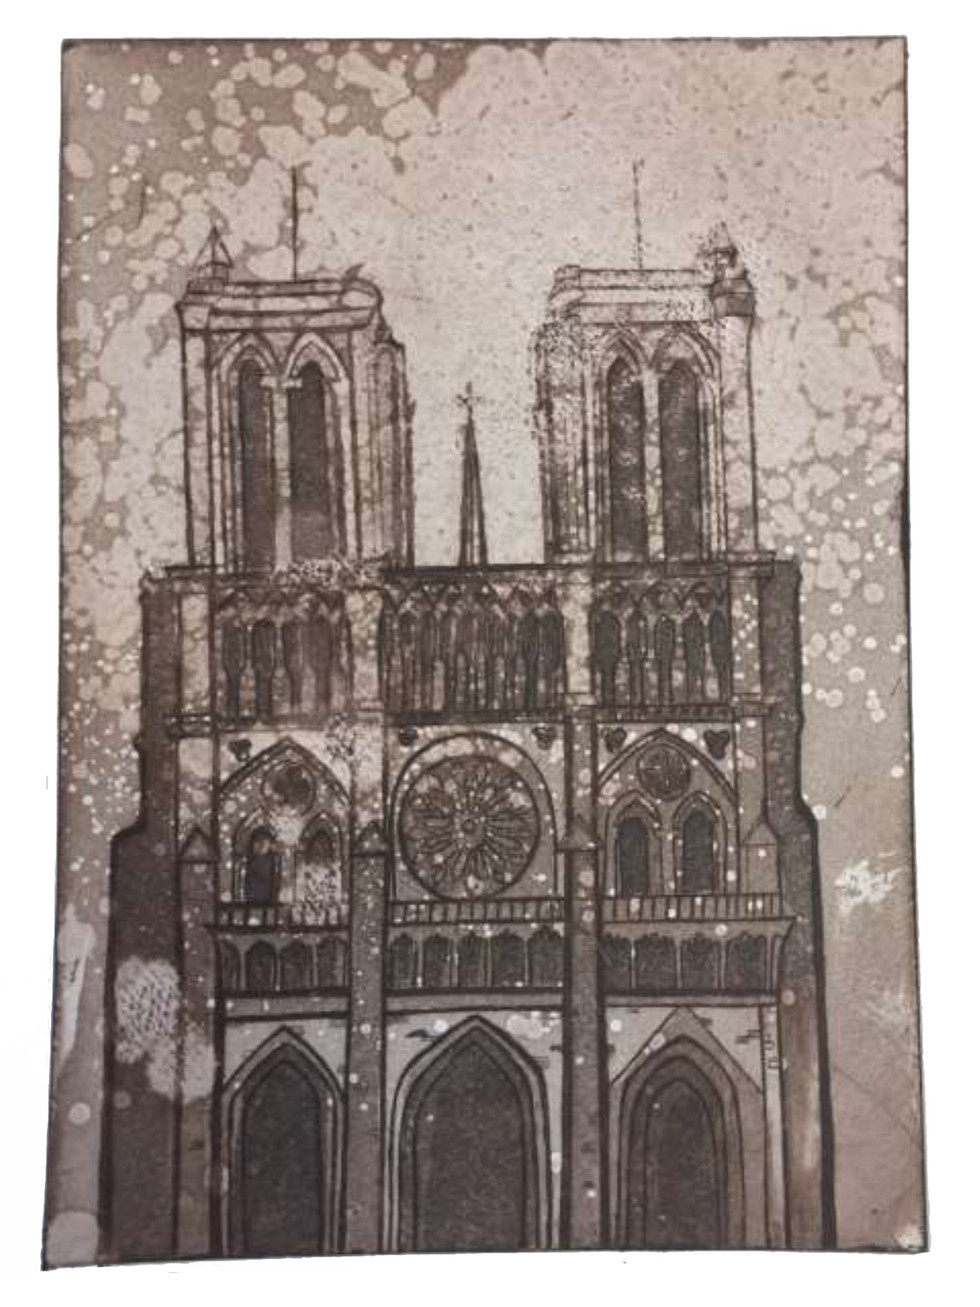 Remembering The Notre-Dame, 2020